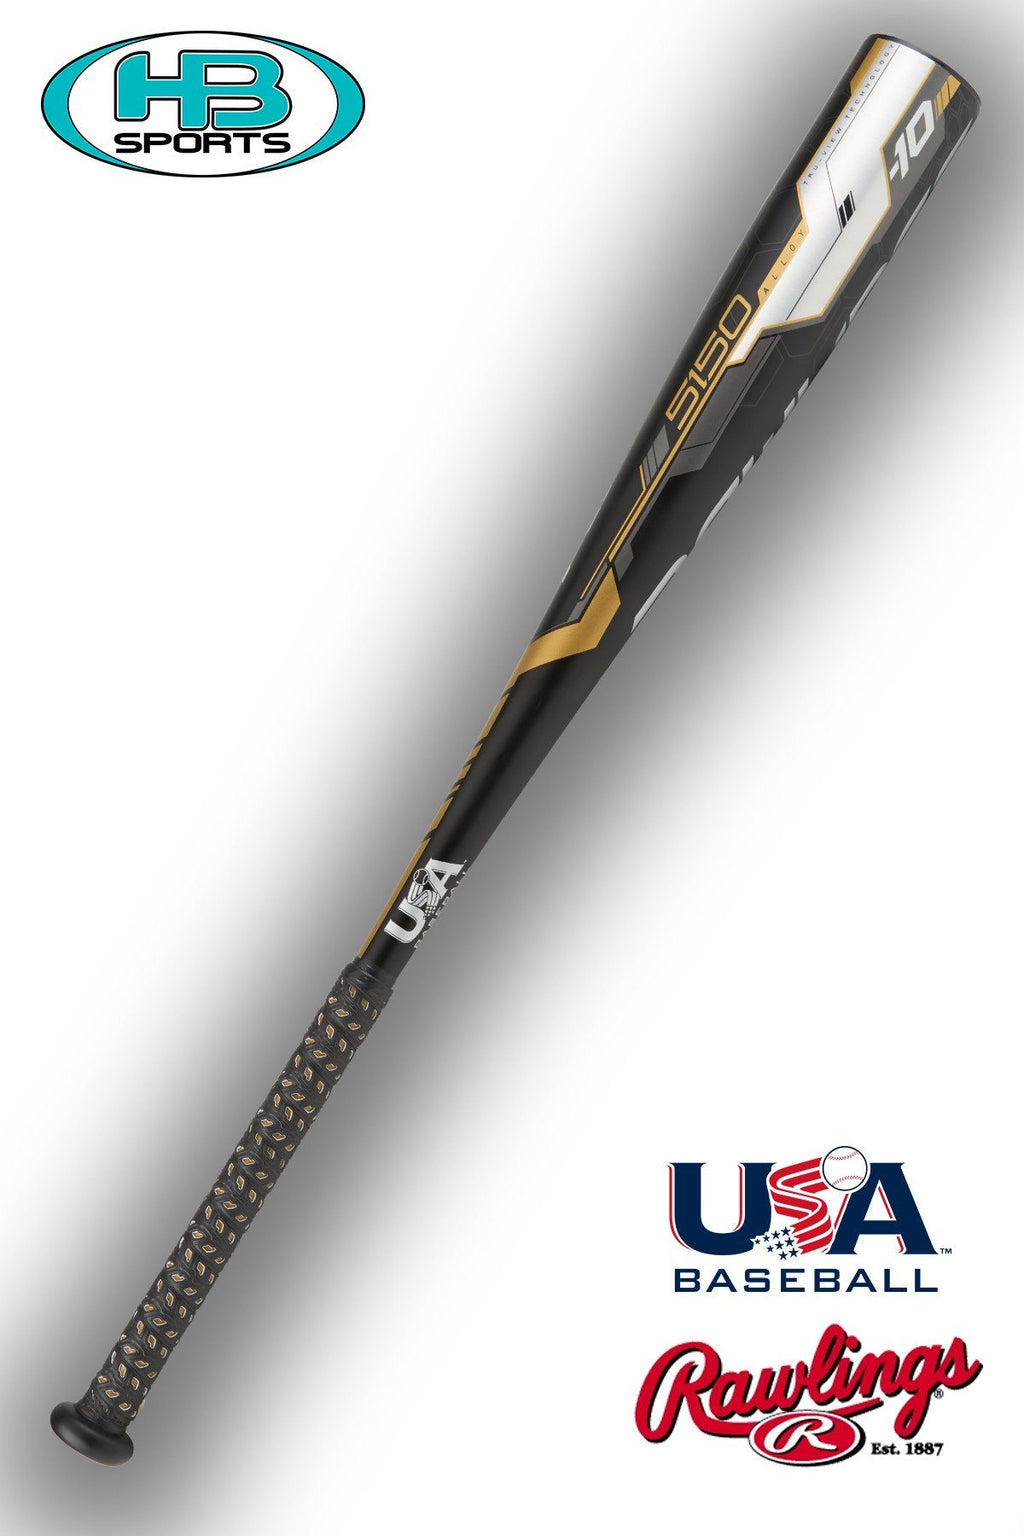 USA Baseball Stamp Rawlings 5150 Alloy Youth Baseball Bat US8510 at Headbangersports.com